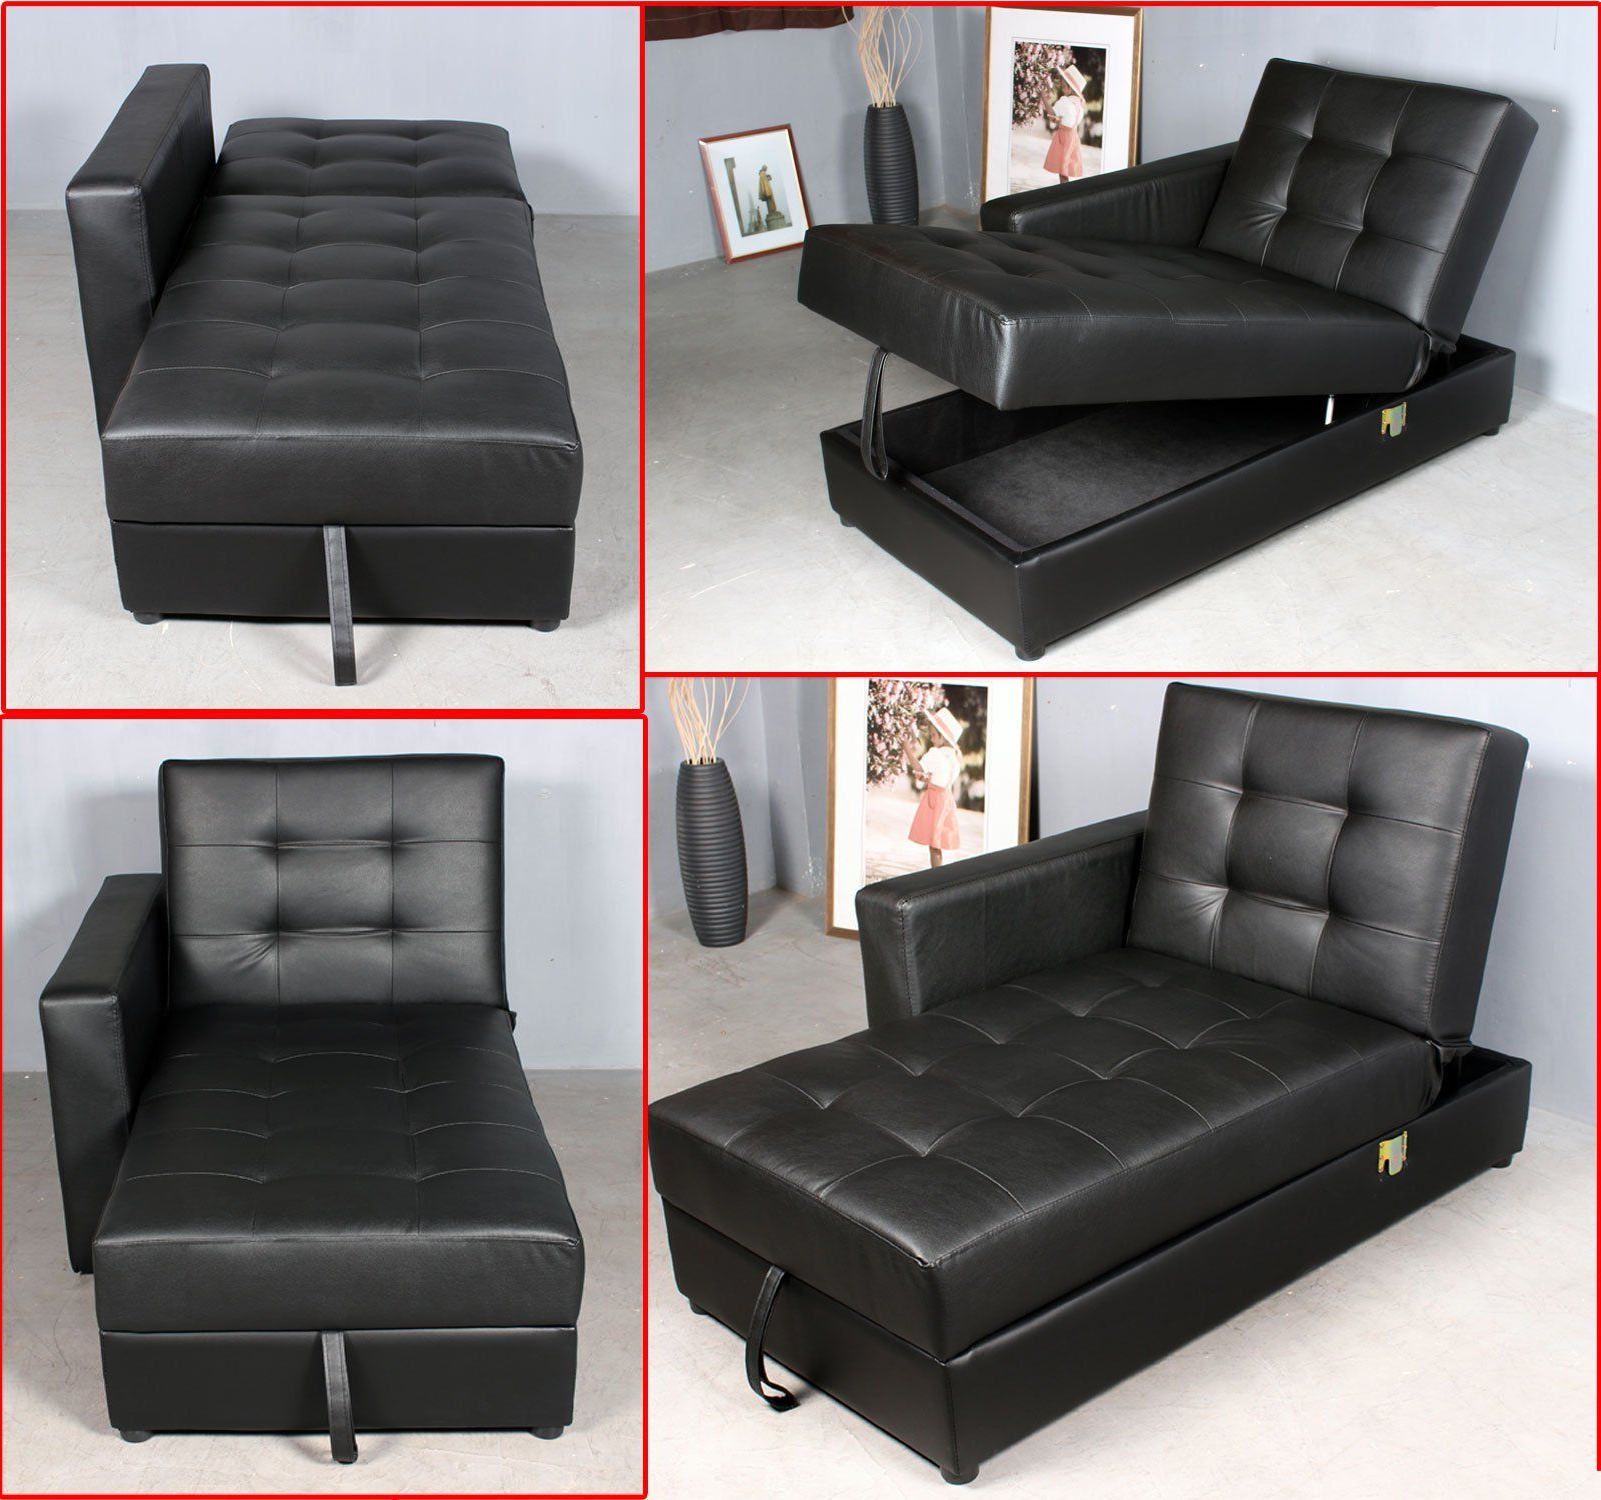 Widely Used Celine Sectional Futon Sofas With Storage Reclining Couch In Homcom Button Tufted Sofa Bed Set Sectional Daybed Storage (View 20 of 20)